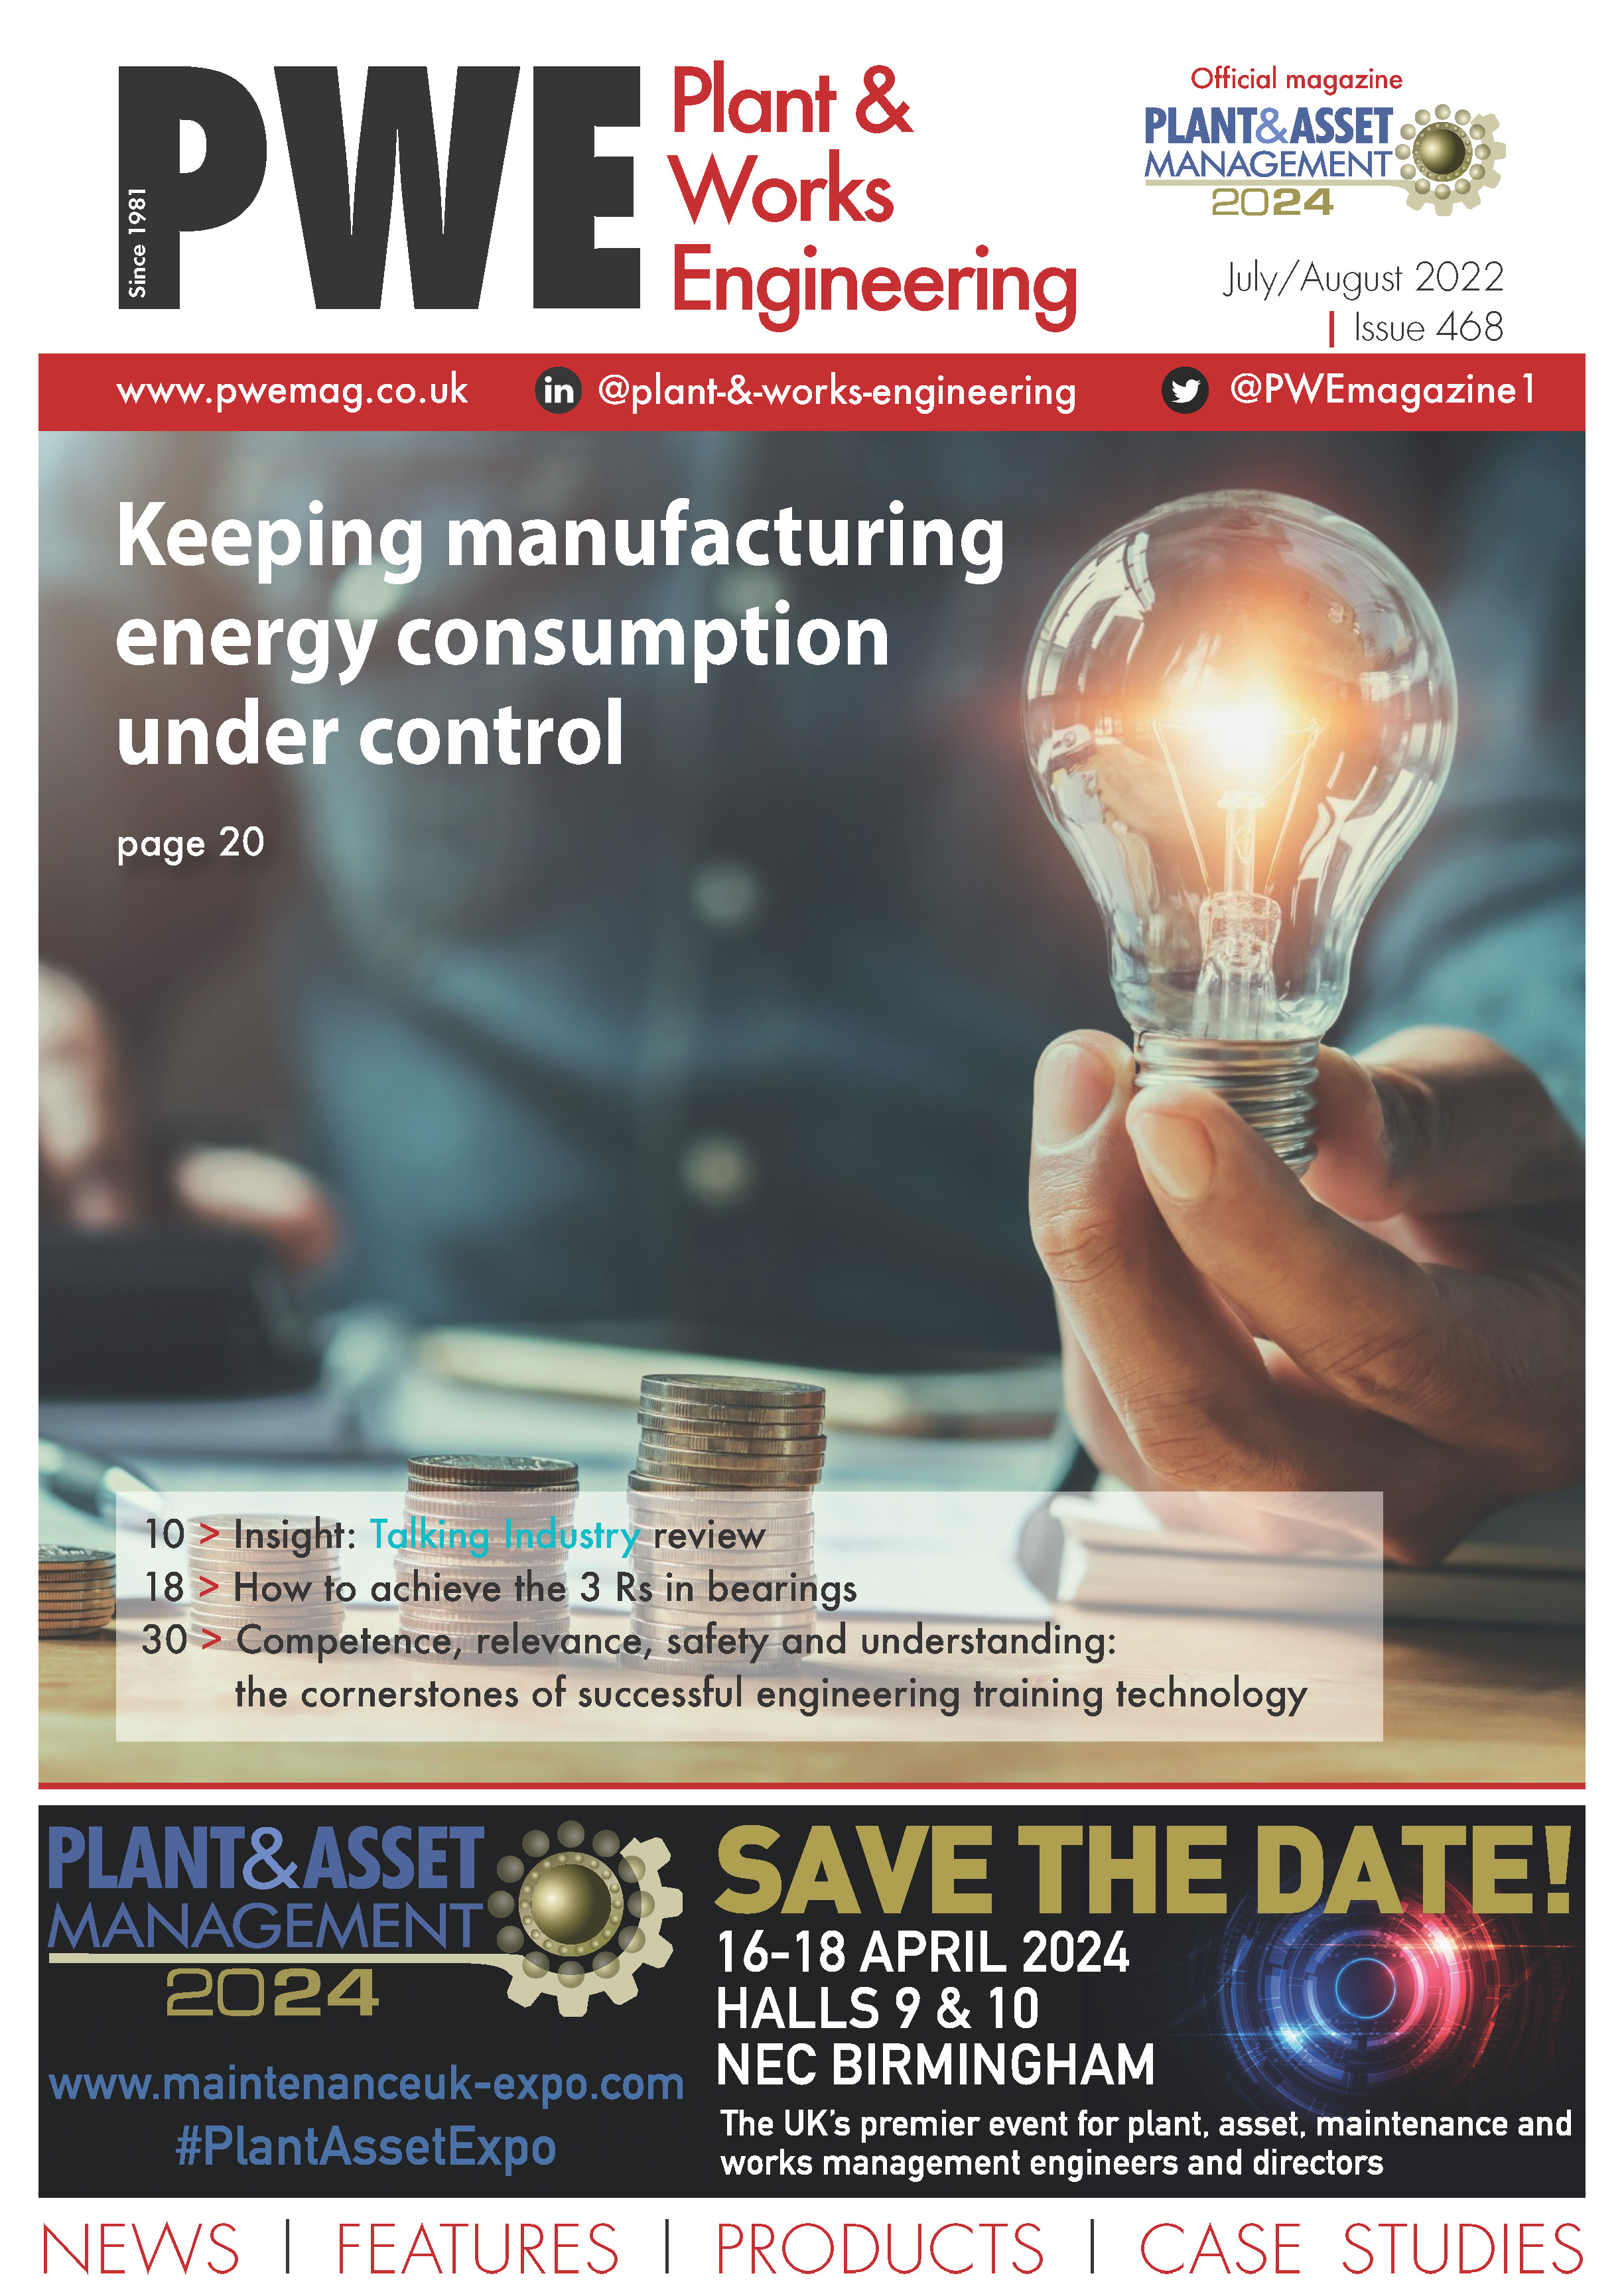 Plant & Works Engineering Latest Issue Cover